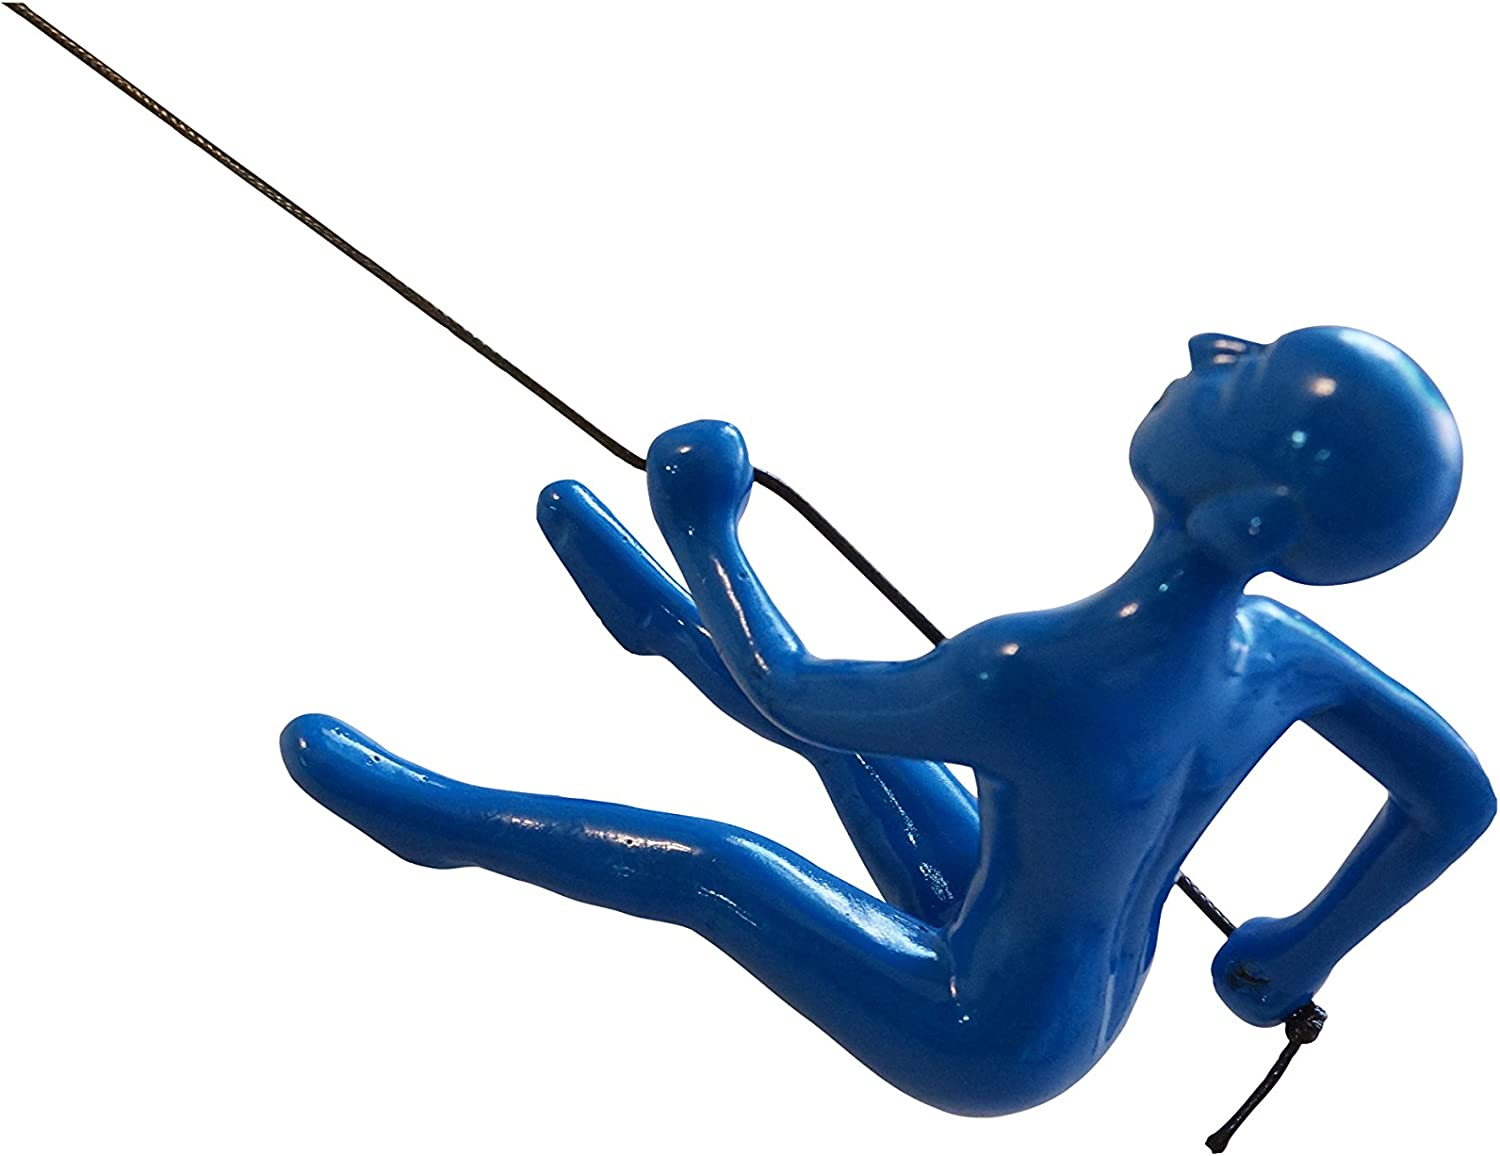 "Climbing Man 3D Hanging Wall Art Sculpture Durable Polyresin, 30"" Leathered Rope and Hanging Hardware Included Blue Color By Eladitems"